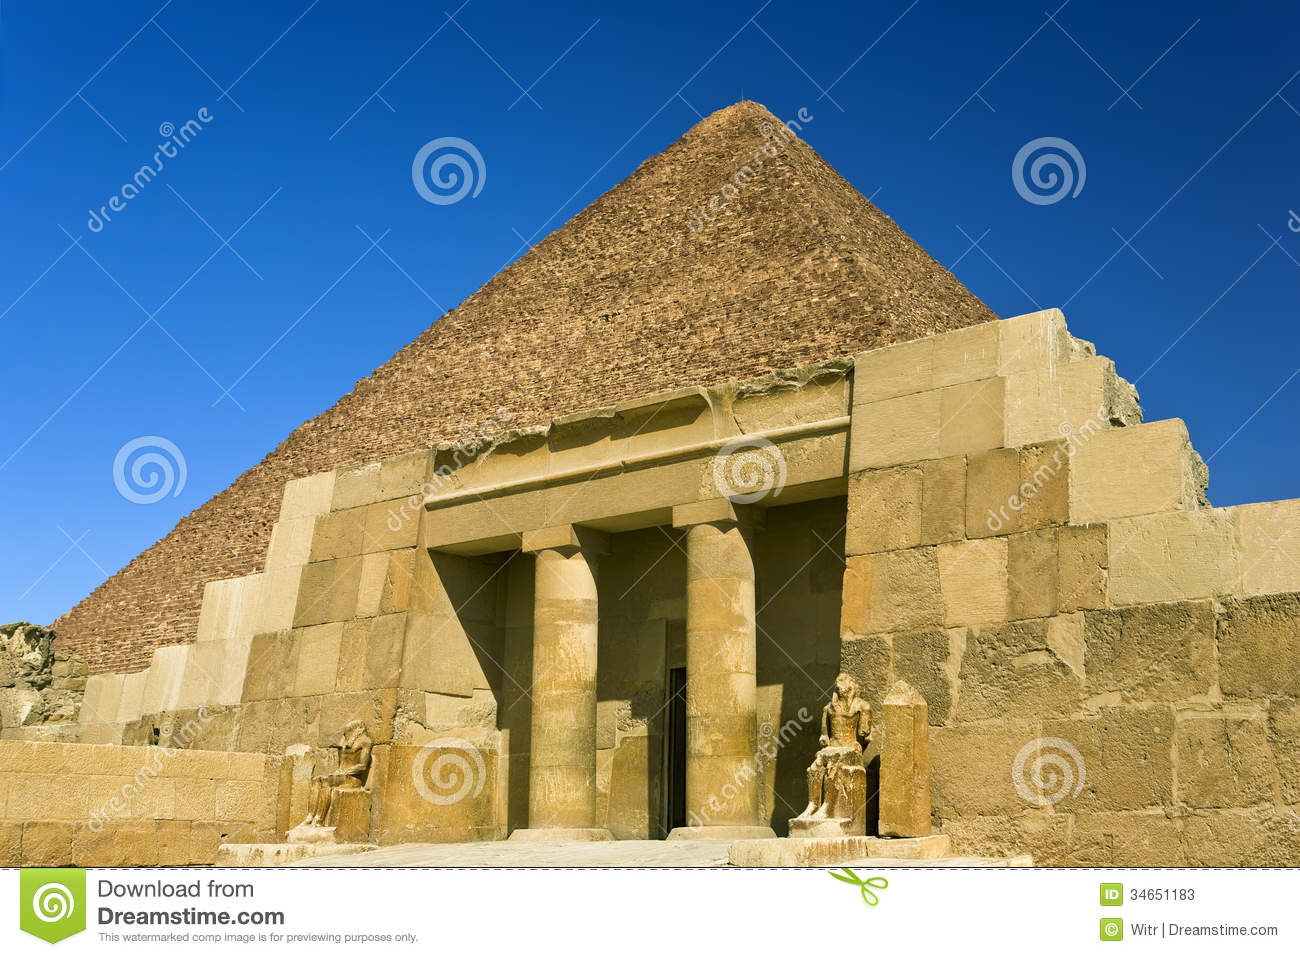 an analysis of mastabas to pyramids Mastabas were made of wood, mud bricks, stone, or a combination of these   the pyramids at giza are flanked by large cemeteries containing hundreds of.